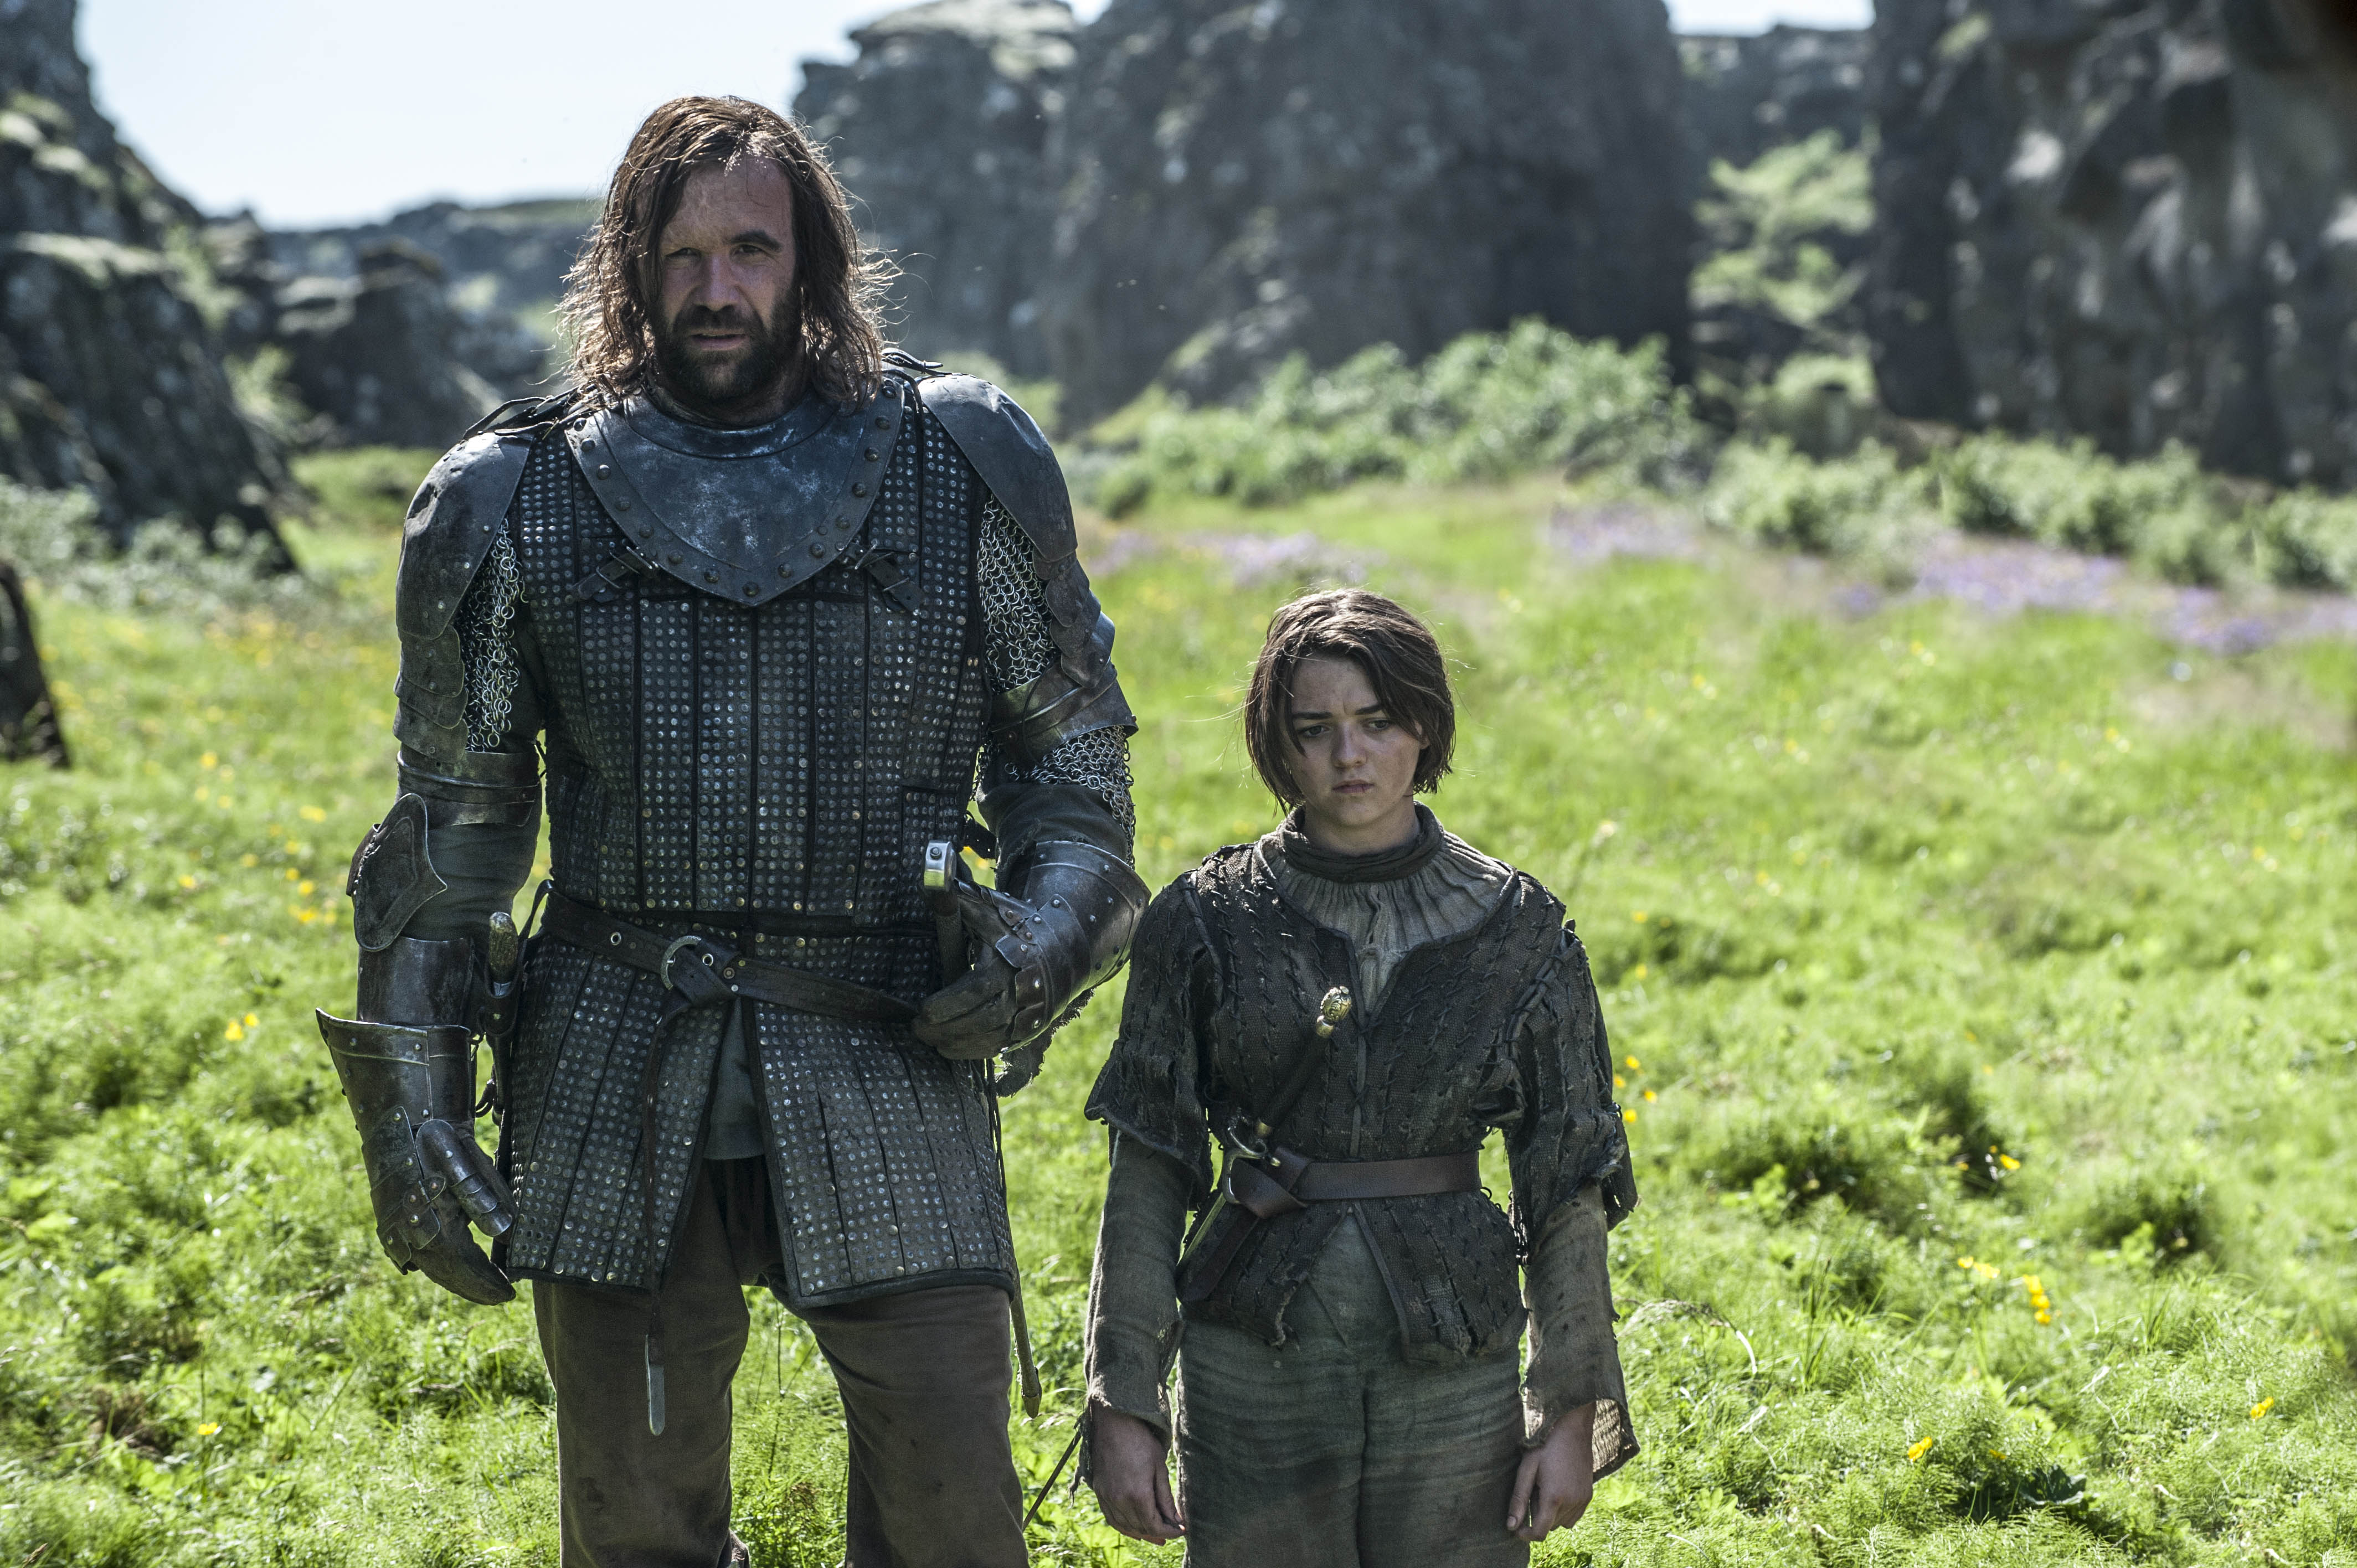 Season 4, Episode 8 – The Mountain and the Viper - Game of ...